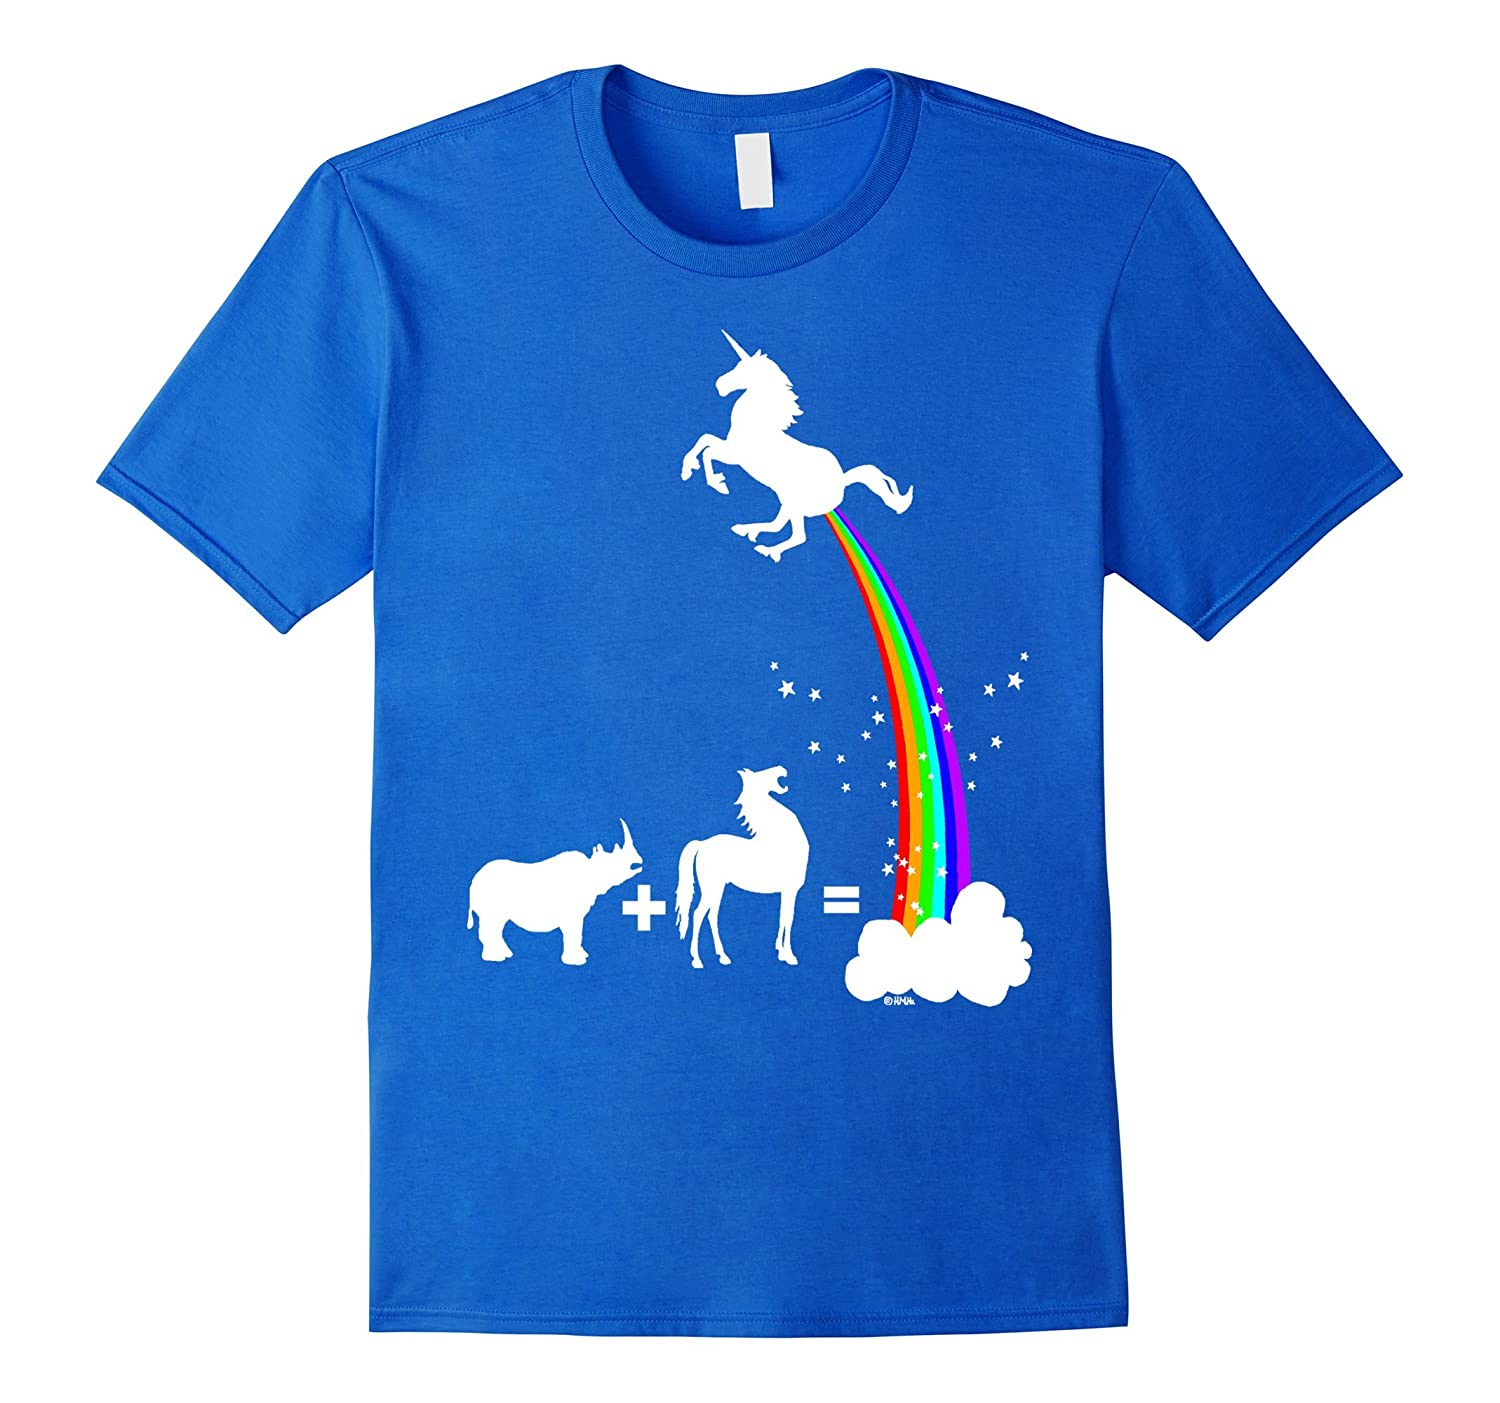 a368cd8a24 Funny Unicorn rainbow T-shirt kid adult women girl top gift-RT ...